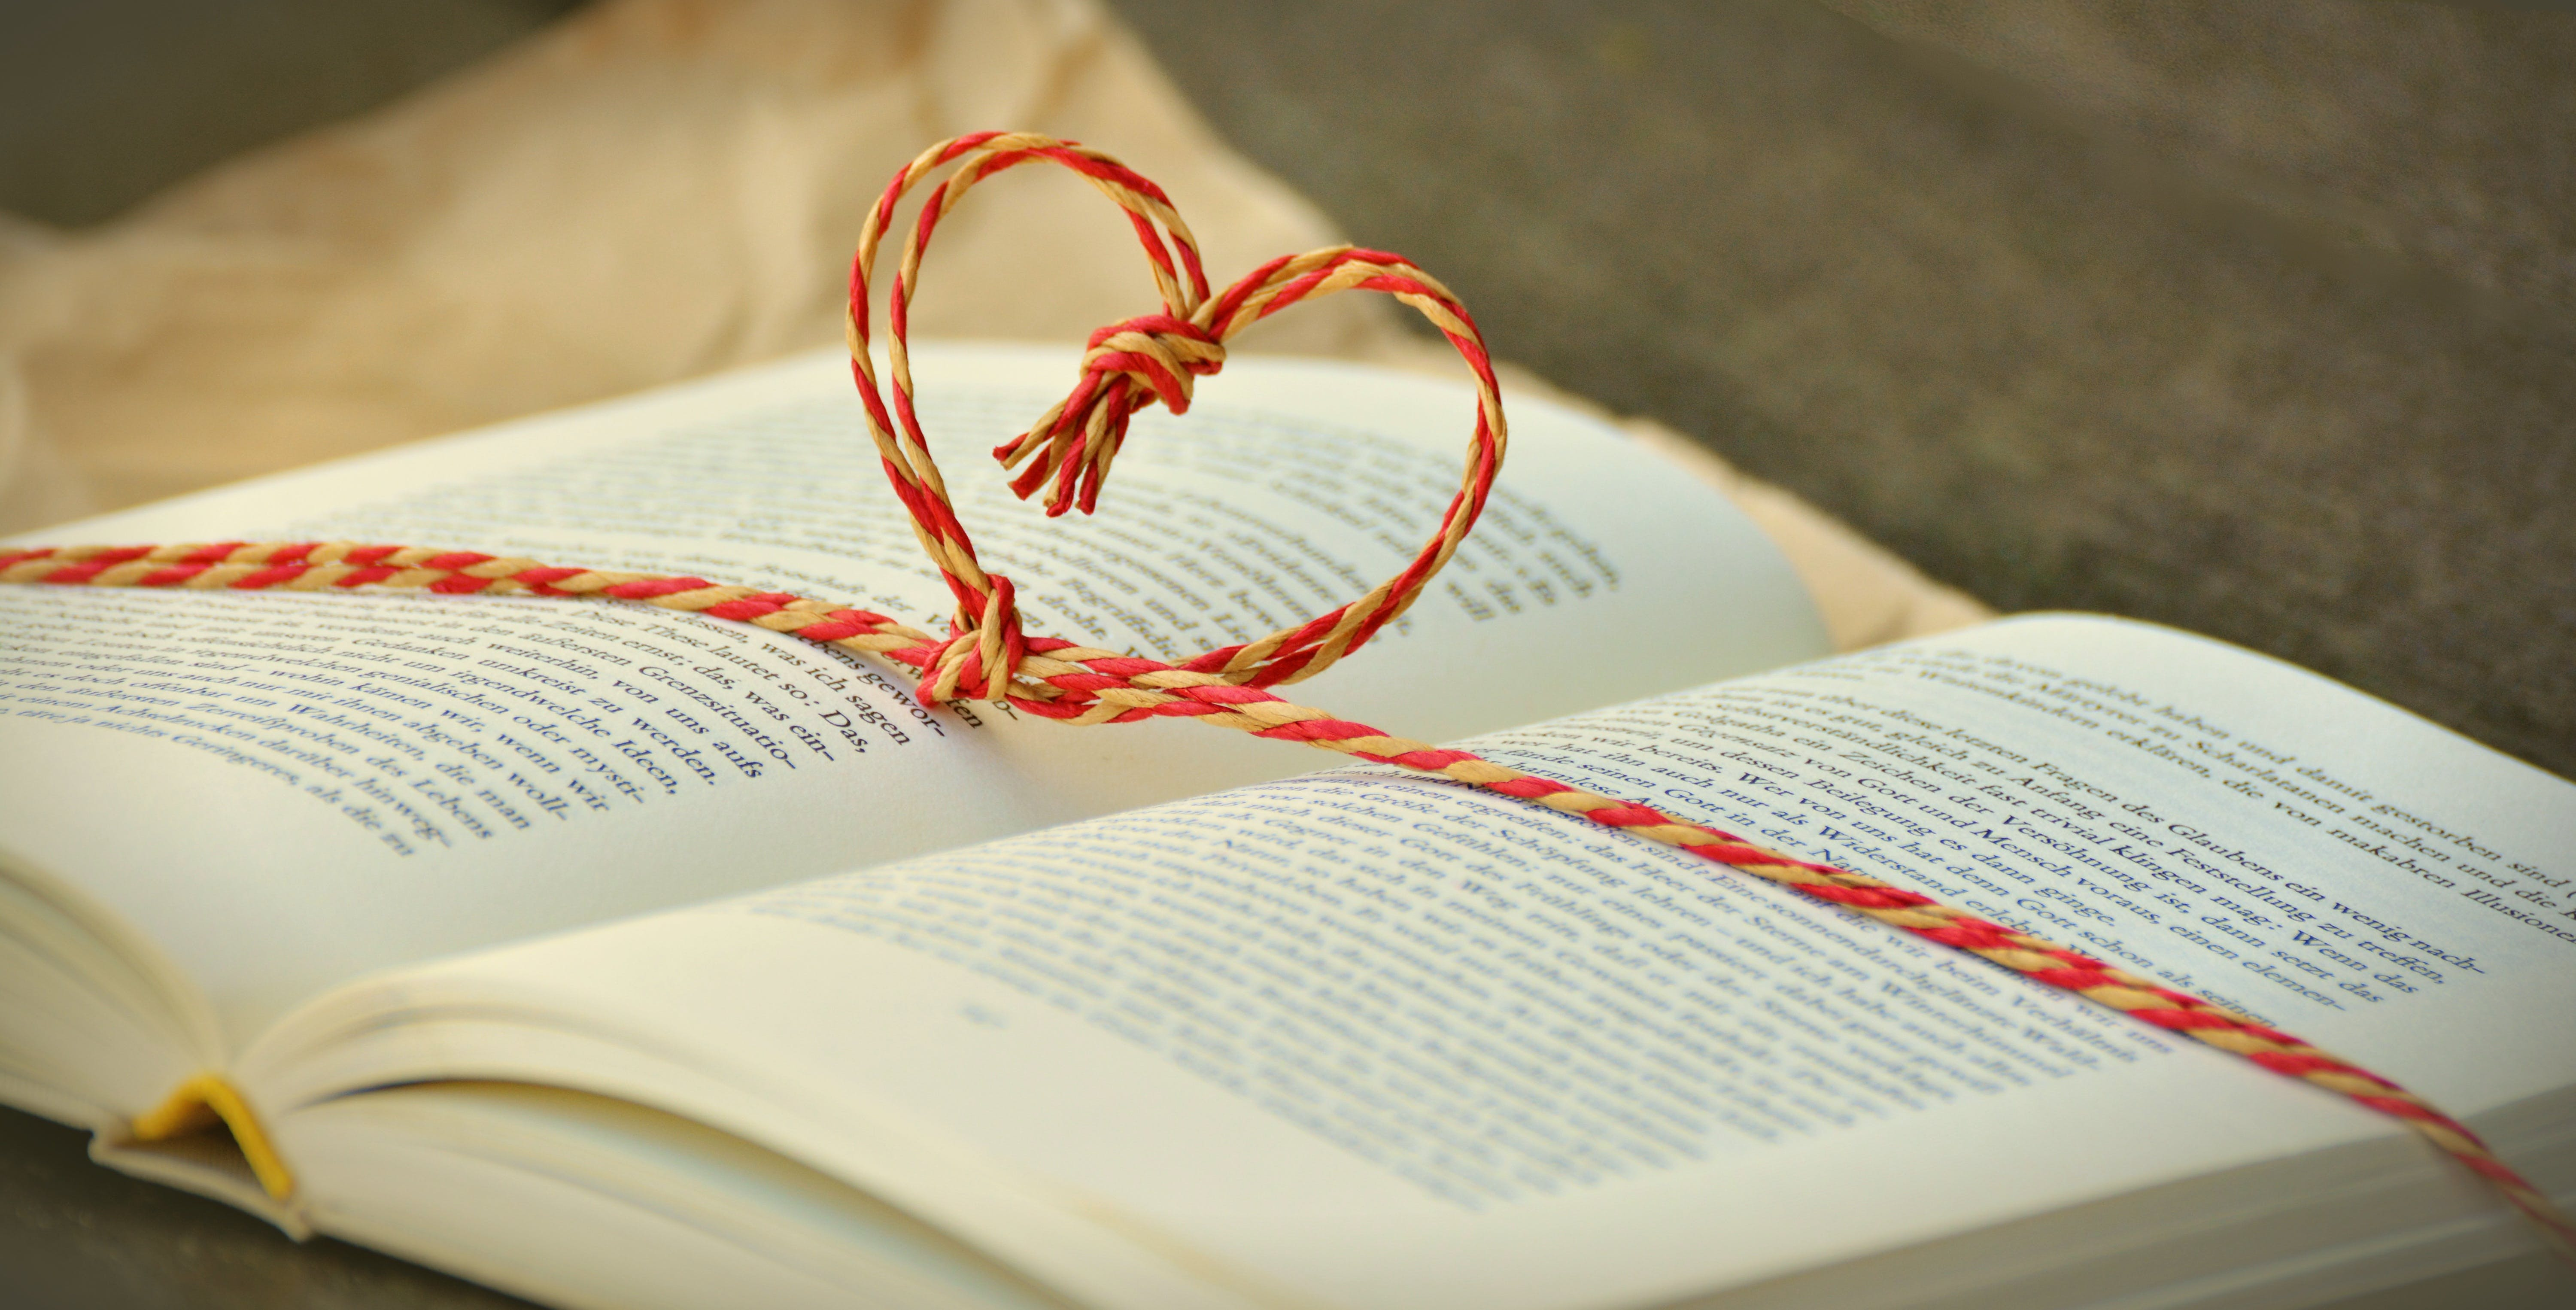 Tied Red and Beige Heart Knot on Opened Book Selective Focus Photo